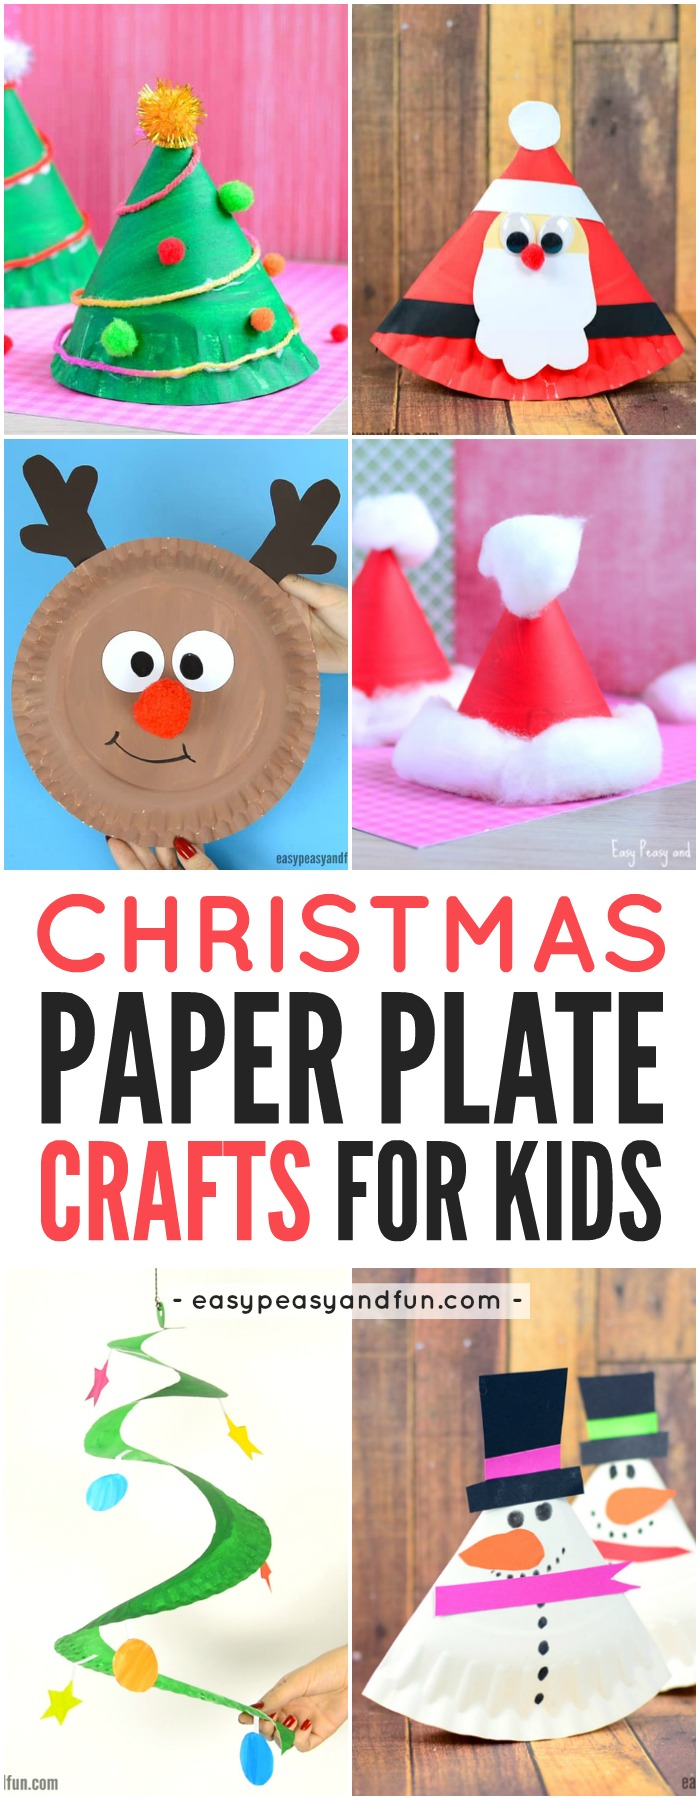 Paper Plate Christmas Crafts For Kids To Make  sc 1 st  Craft Ideas For Boyfriend Christmas - eccad.info & Easy Christmas Crafts With Paper Plates 8211Craft Ideas b.eccad.info